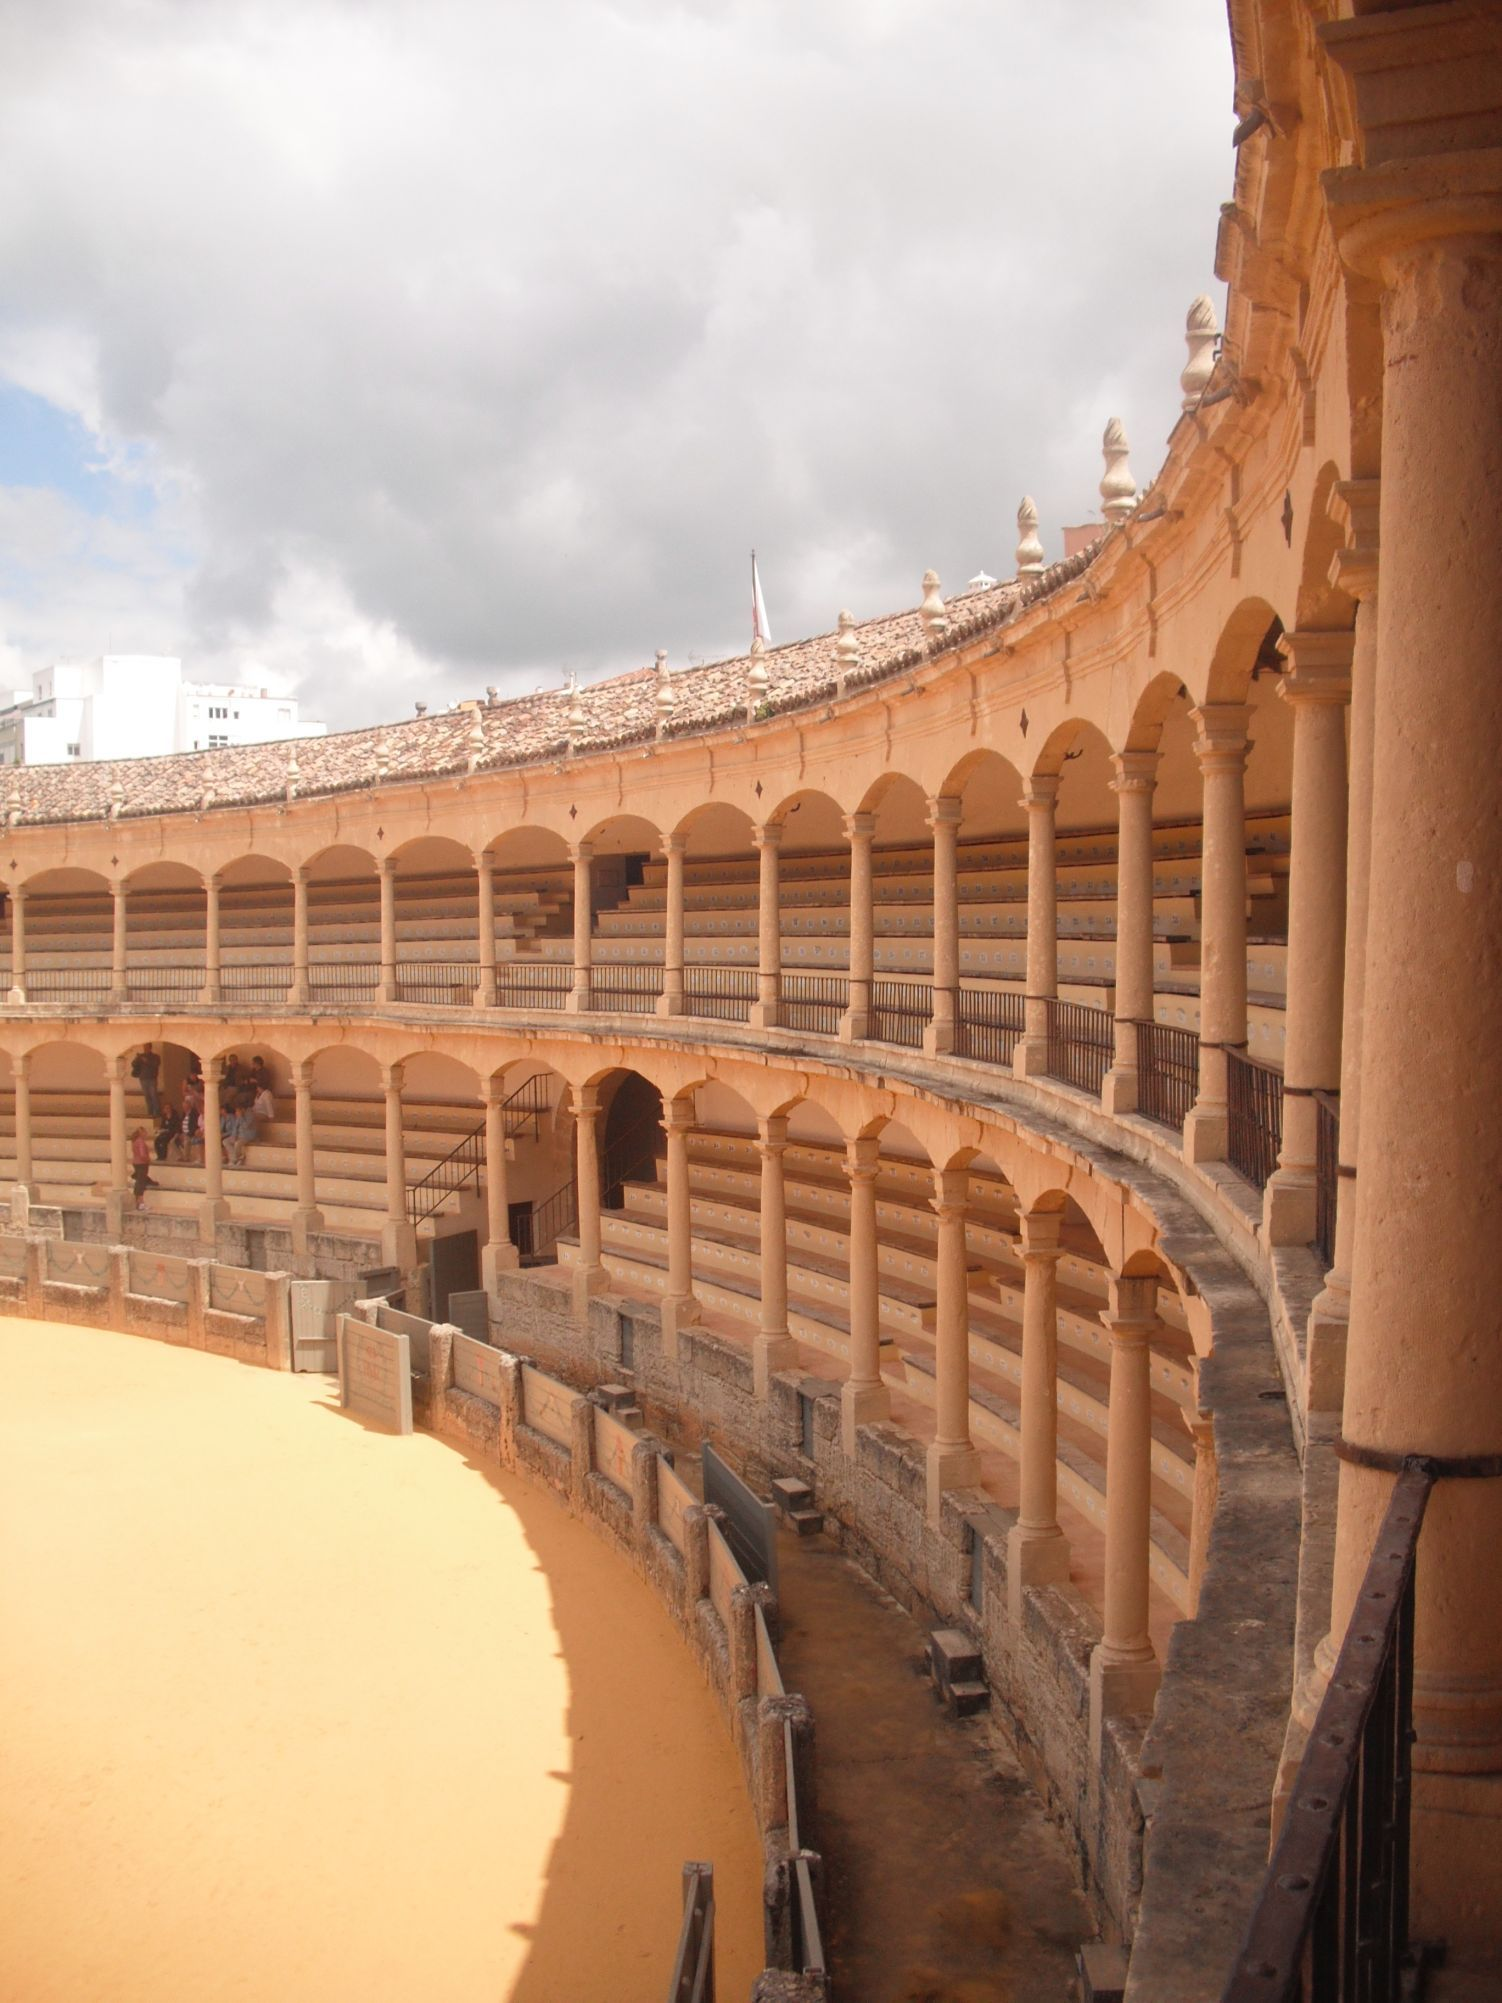 Ronda, bullfighting arena. Birthplace of bullfighting